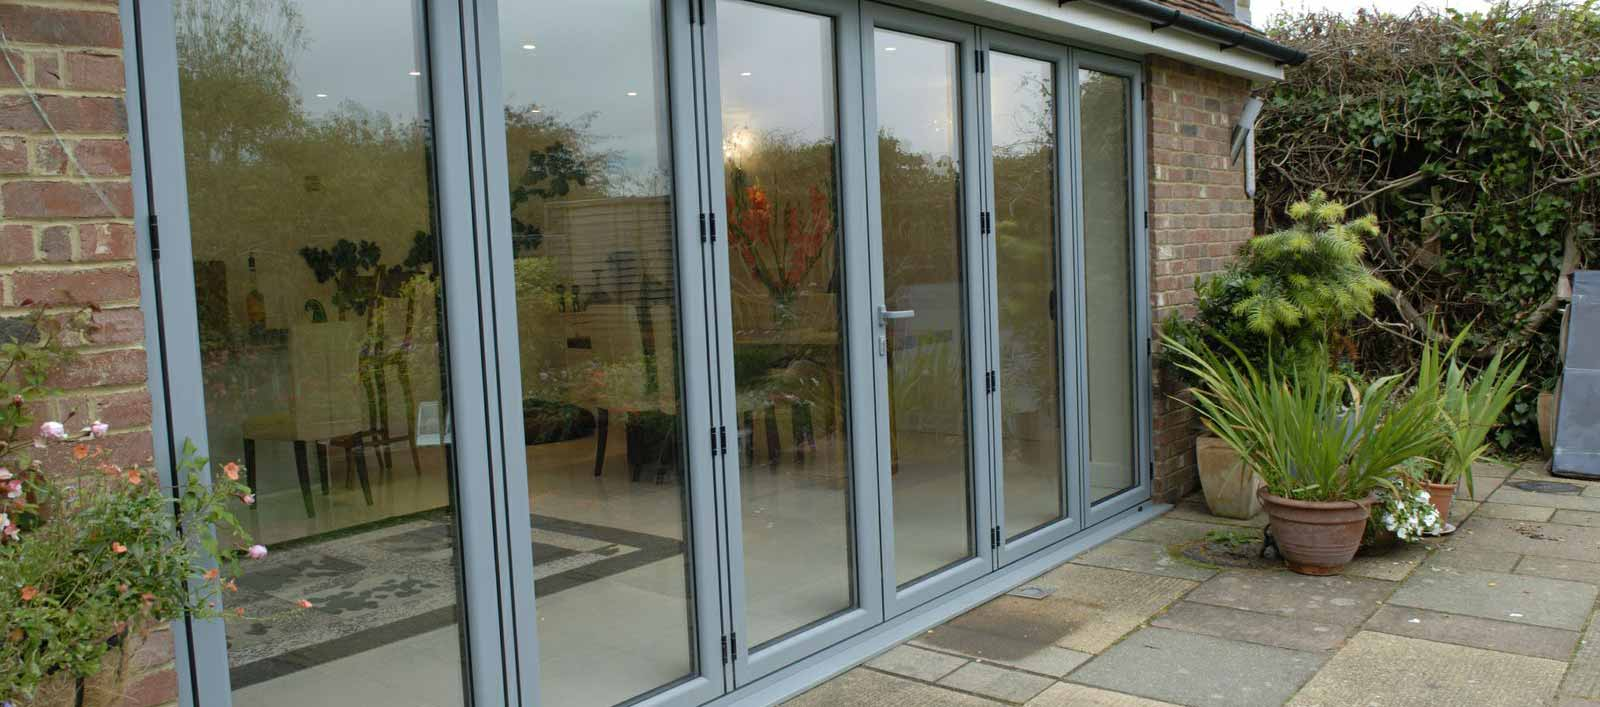 Aluminium BiFold Doors Coventry | Bifolding Doors | Contact for quote